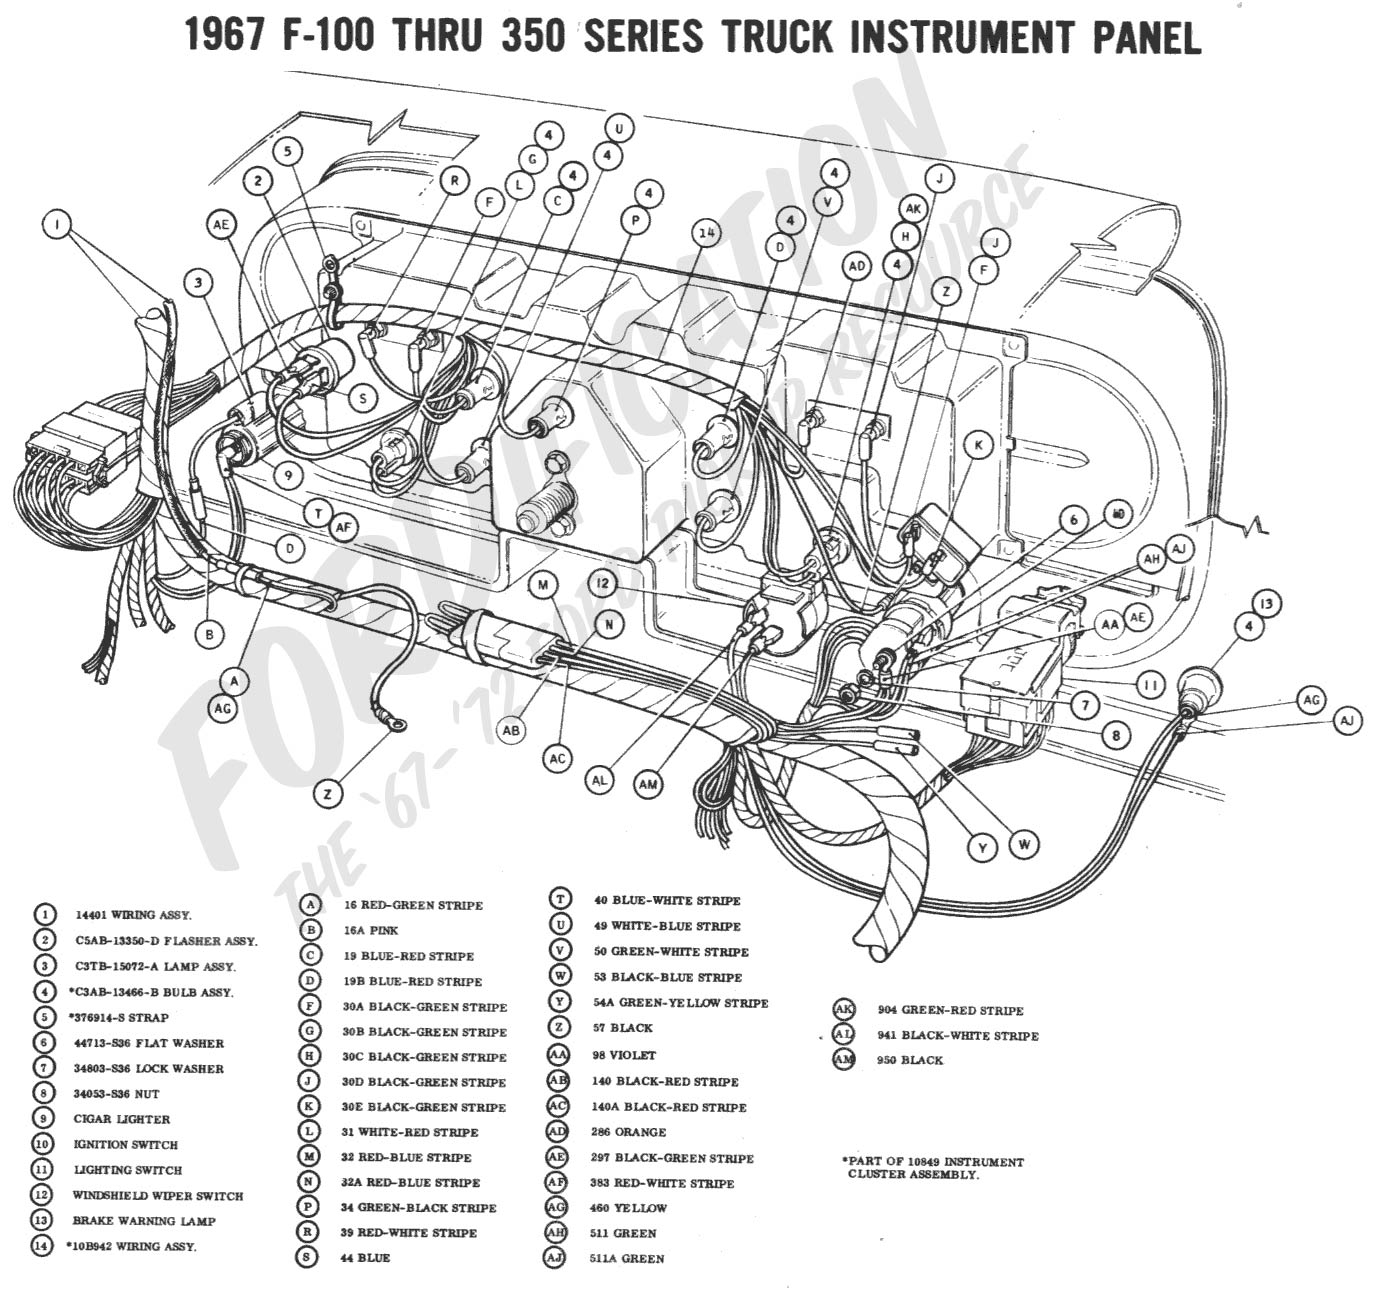 wiring 1967instrumentpanel ford truck technical drawings and schematics section h wiring  at crackthecode.co